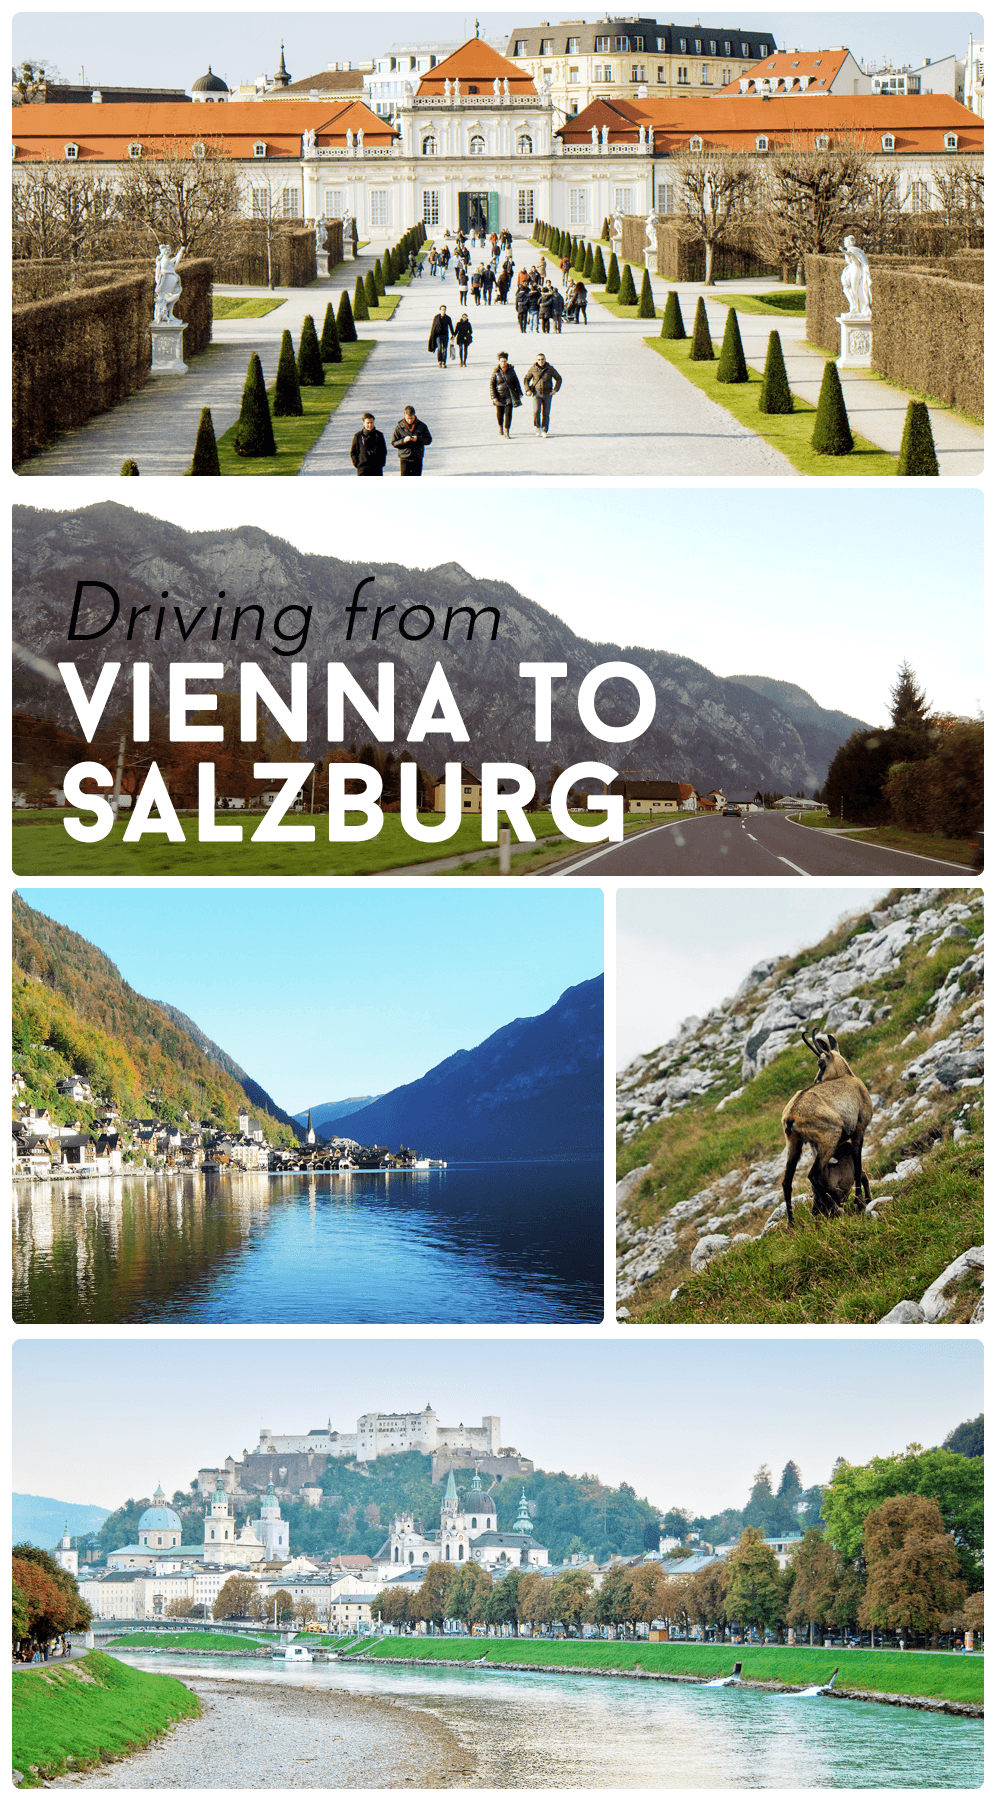 Austria is brimming with beautiful landscapes and charming towns. Visit them in this road trip itinerary from Vienna to Salzburg.